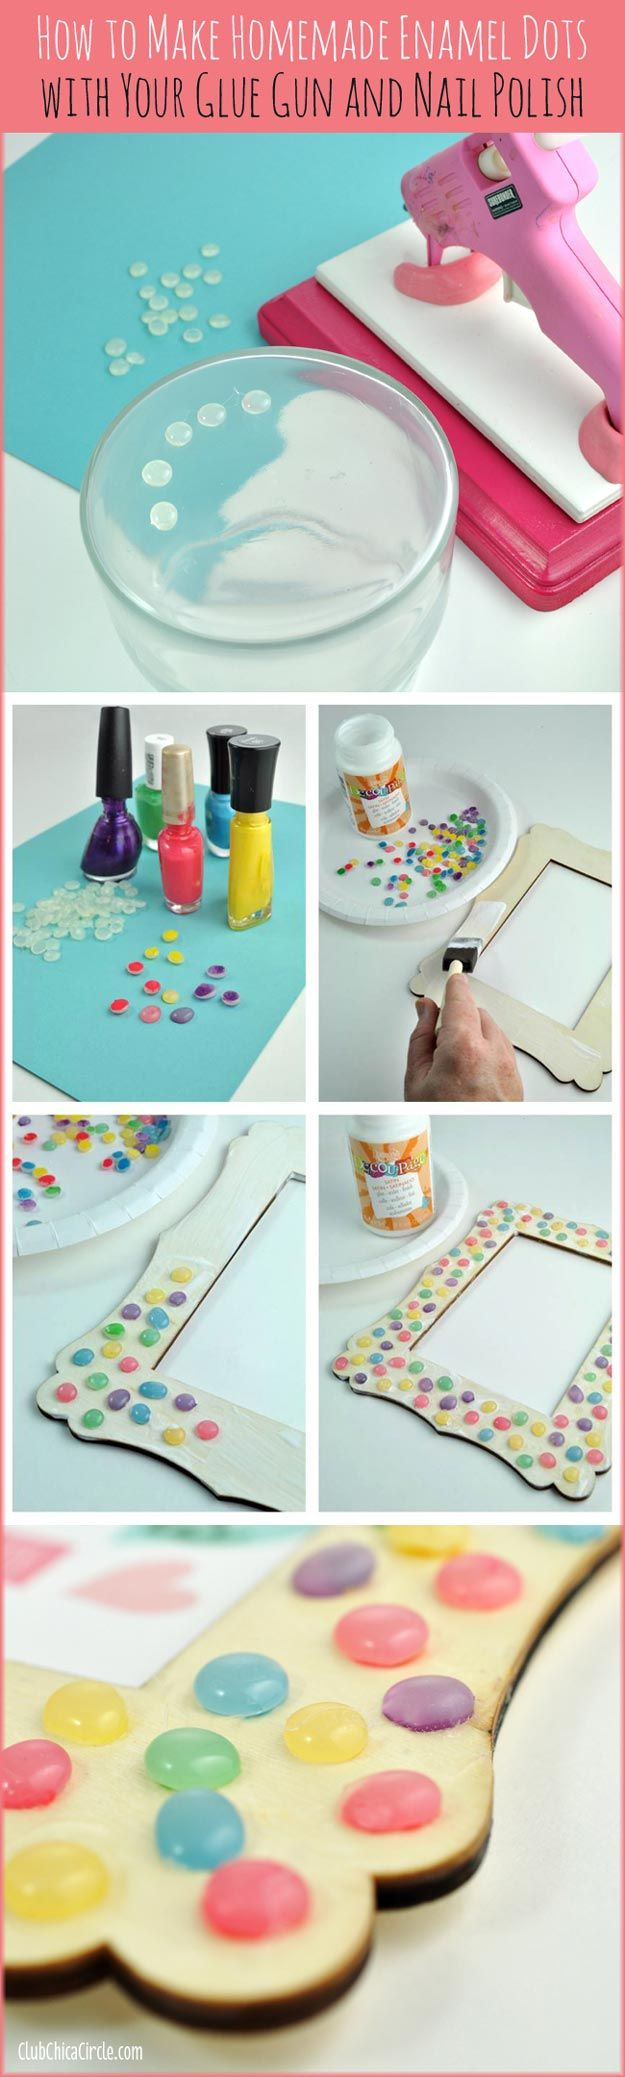 17 best ideas about glue gun crafts on pinterest hot for Best glue for crafts